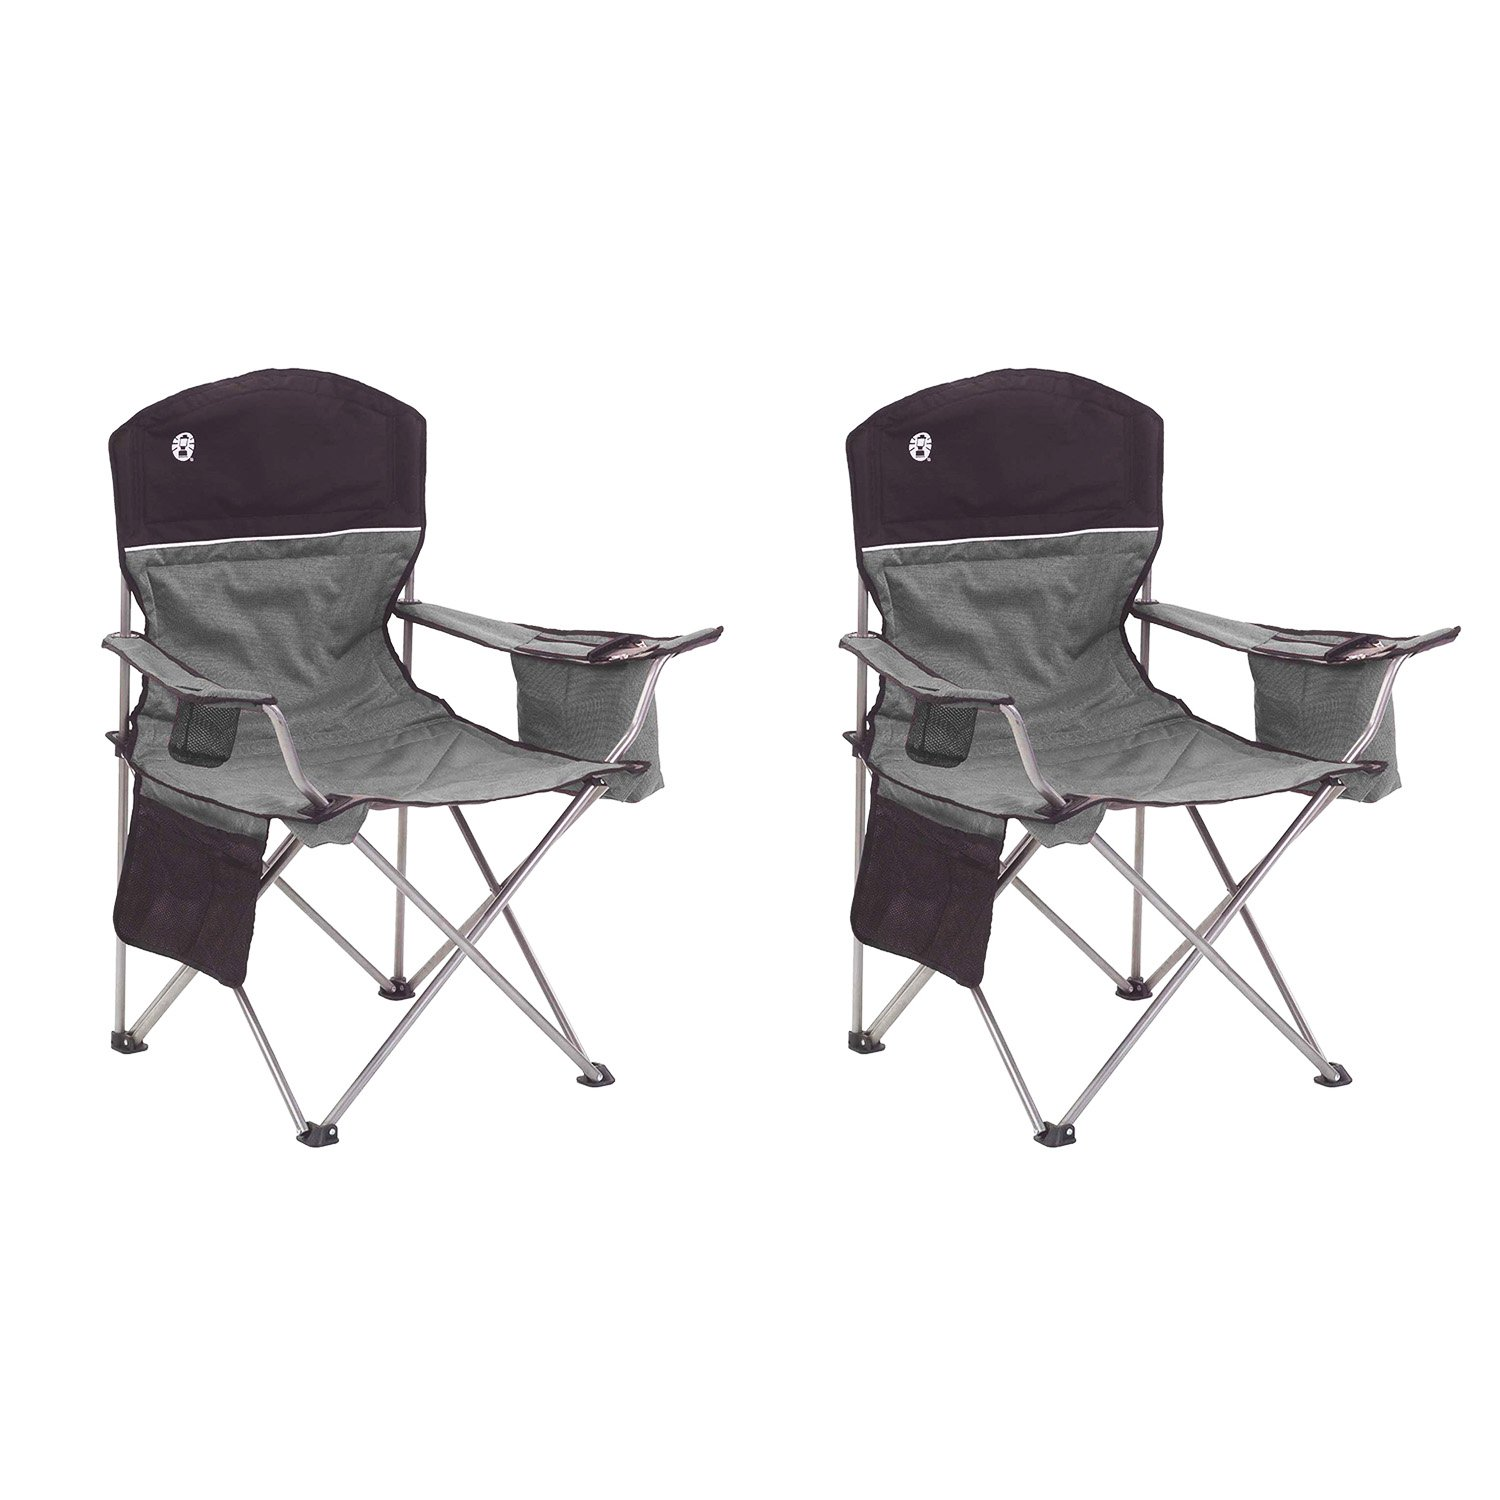 black patio chairs folding target outdoor coleman oversized camping lawn cooler 2 pack 2000020256 walmart com